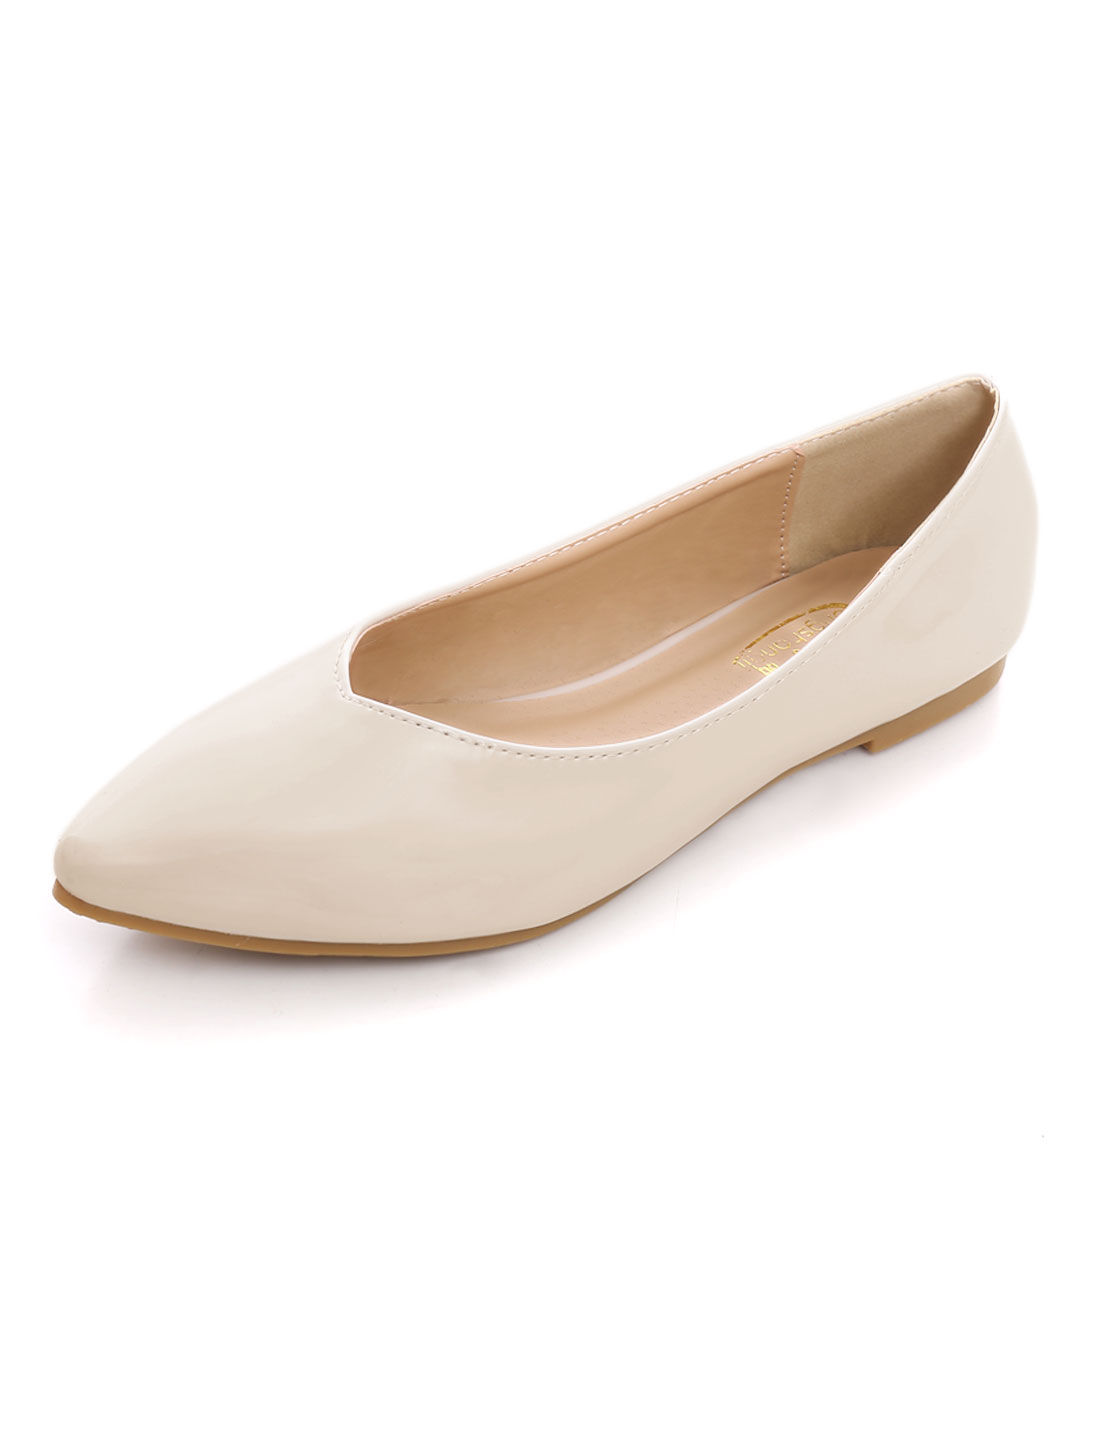 Woman Patent-Leather V-Cut Vamp Pointed Flat Comfort Shoes Apricot US 10.5